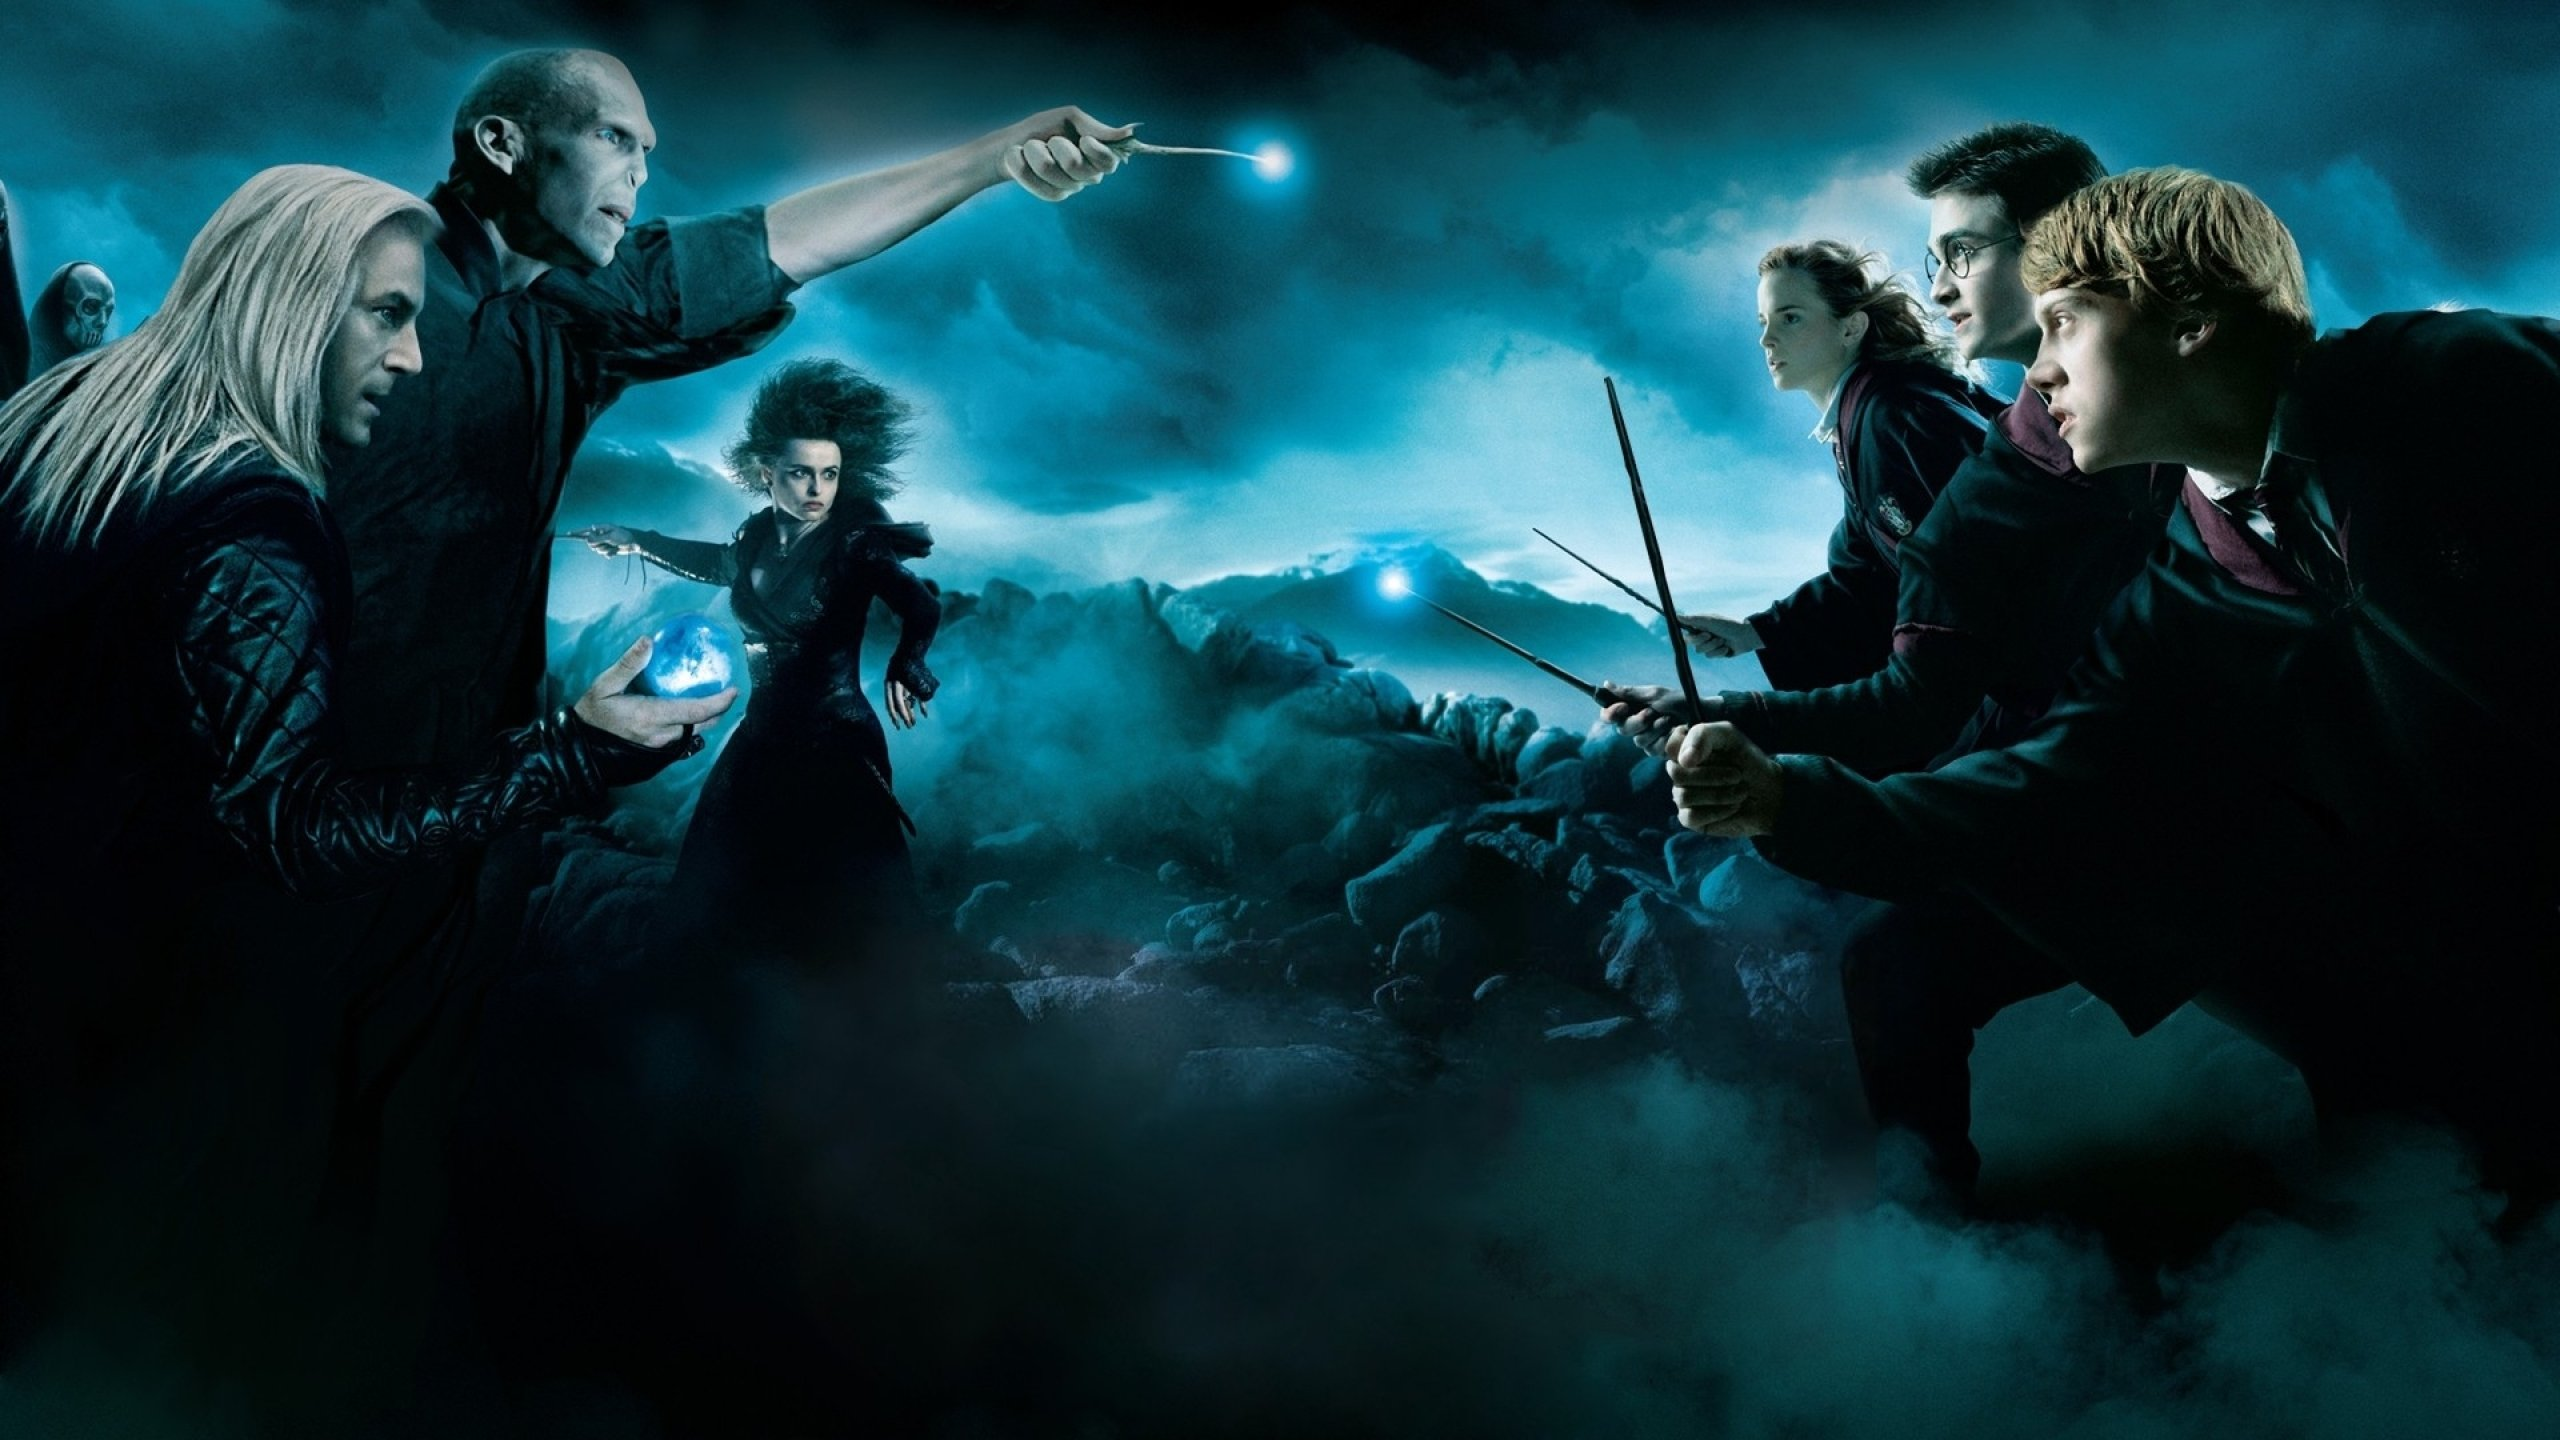 Harry Potter Wizards Unite Mobile Based Ar Game Is Launching In 2019